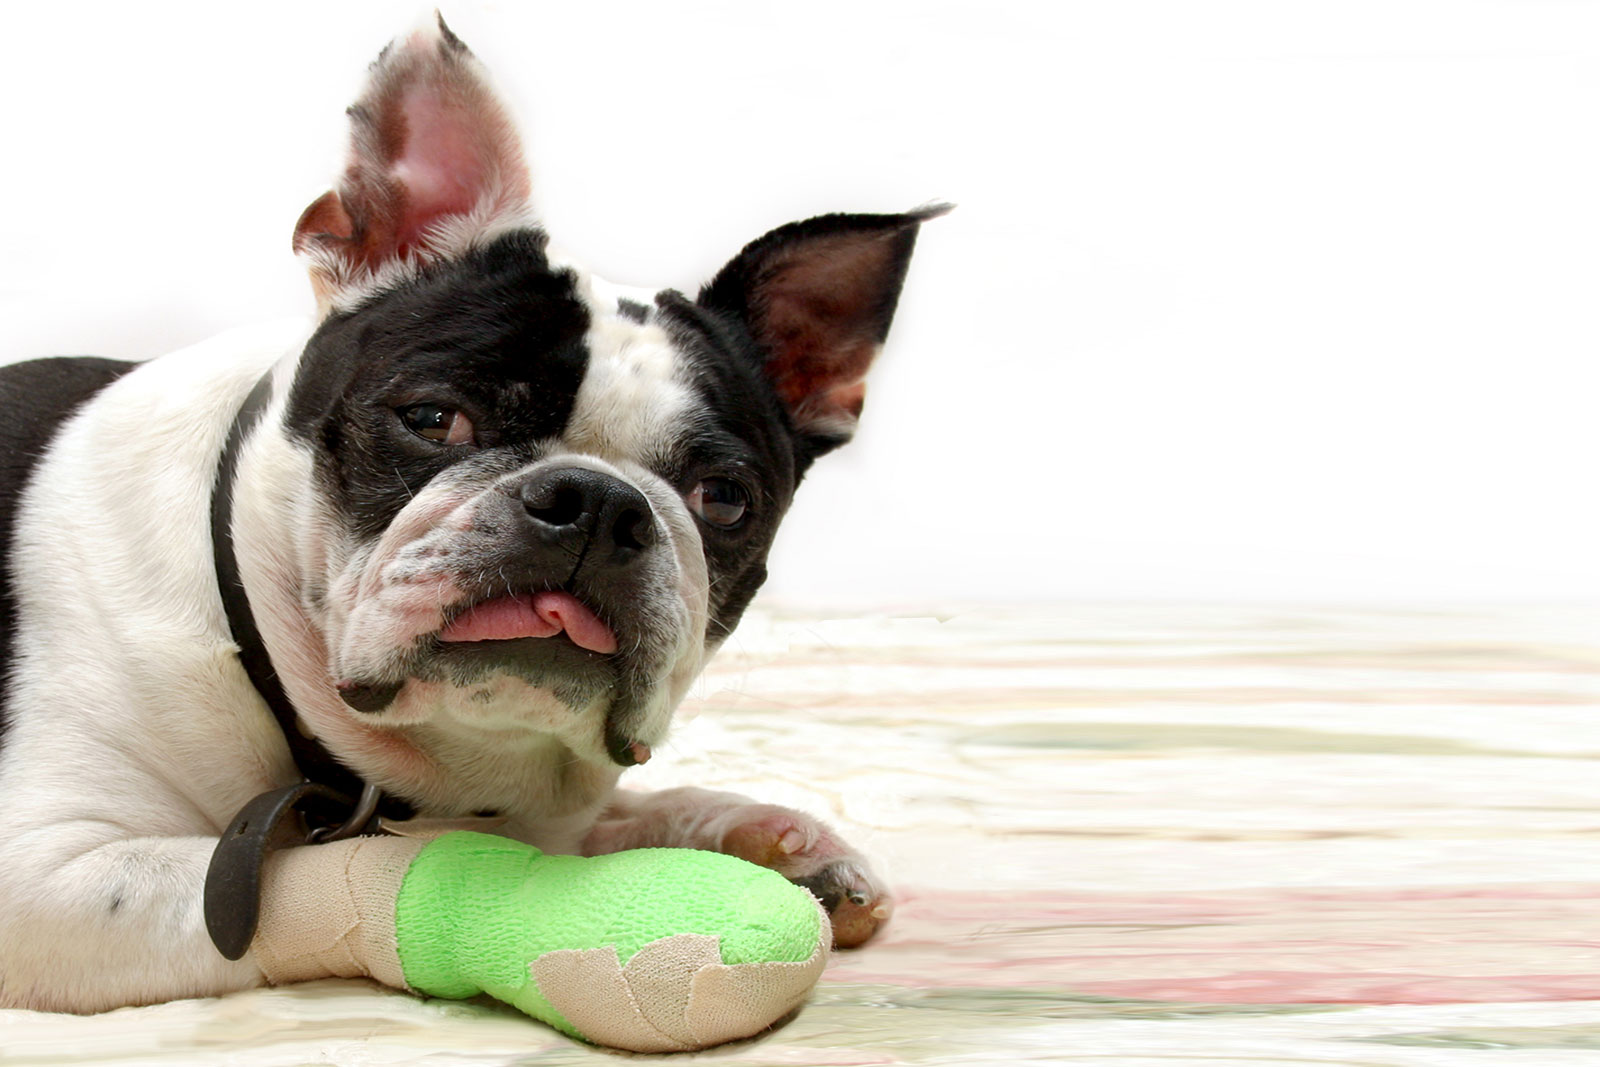 How to Keep Bandages on a Dog